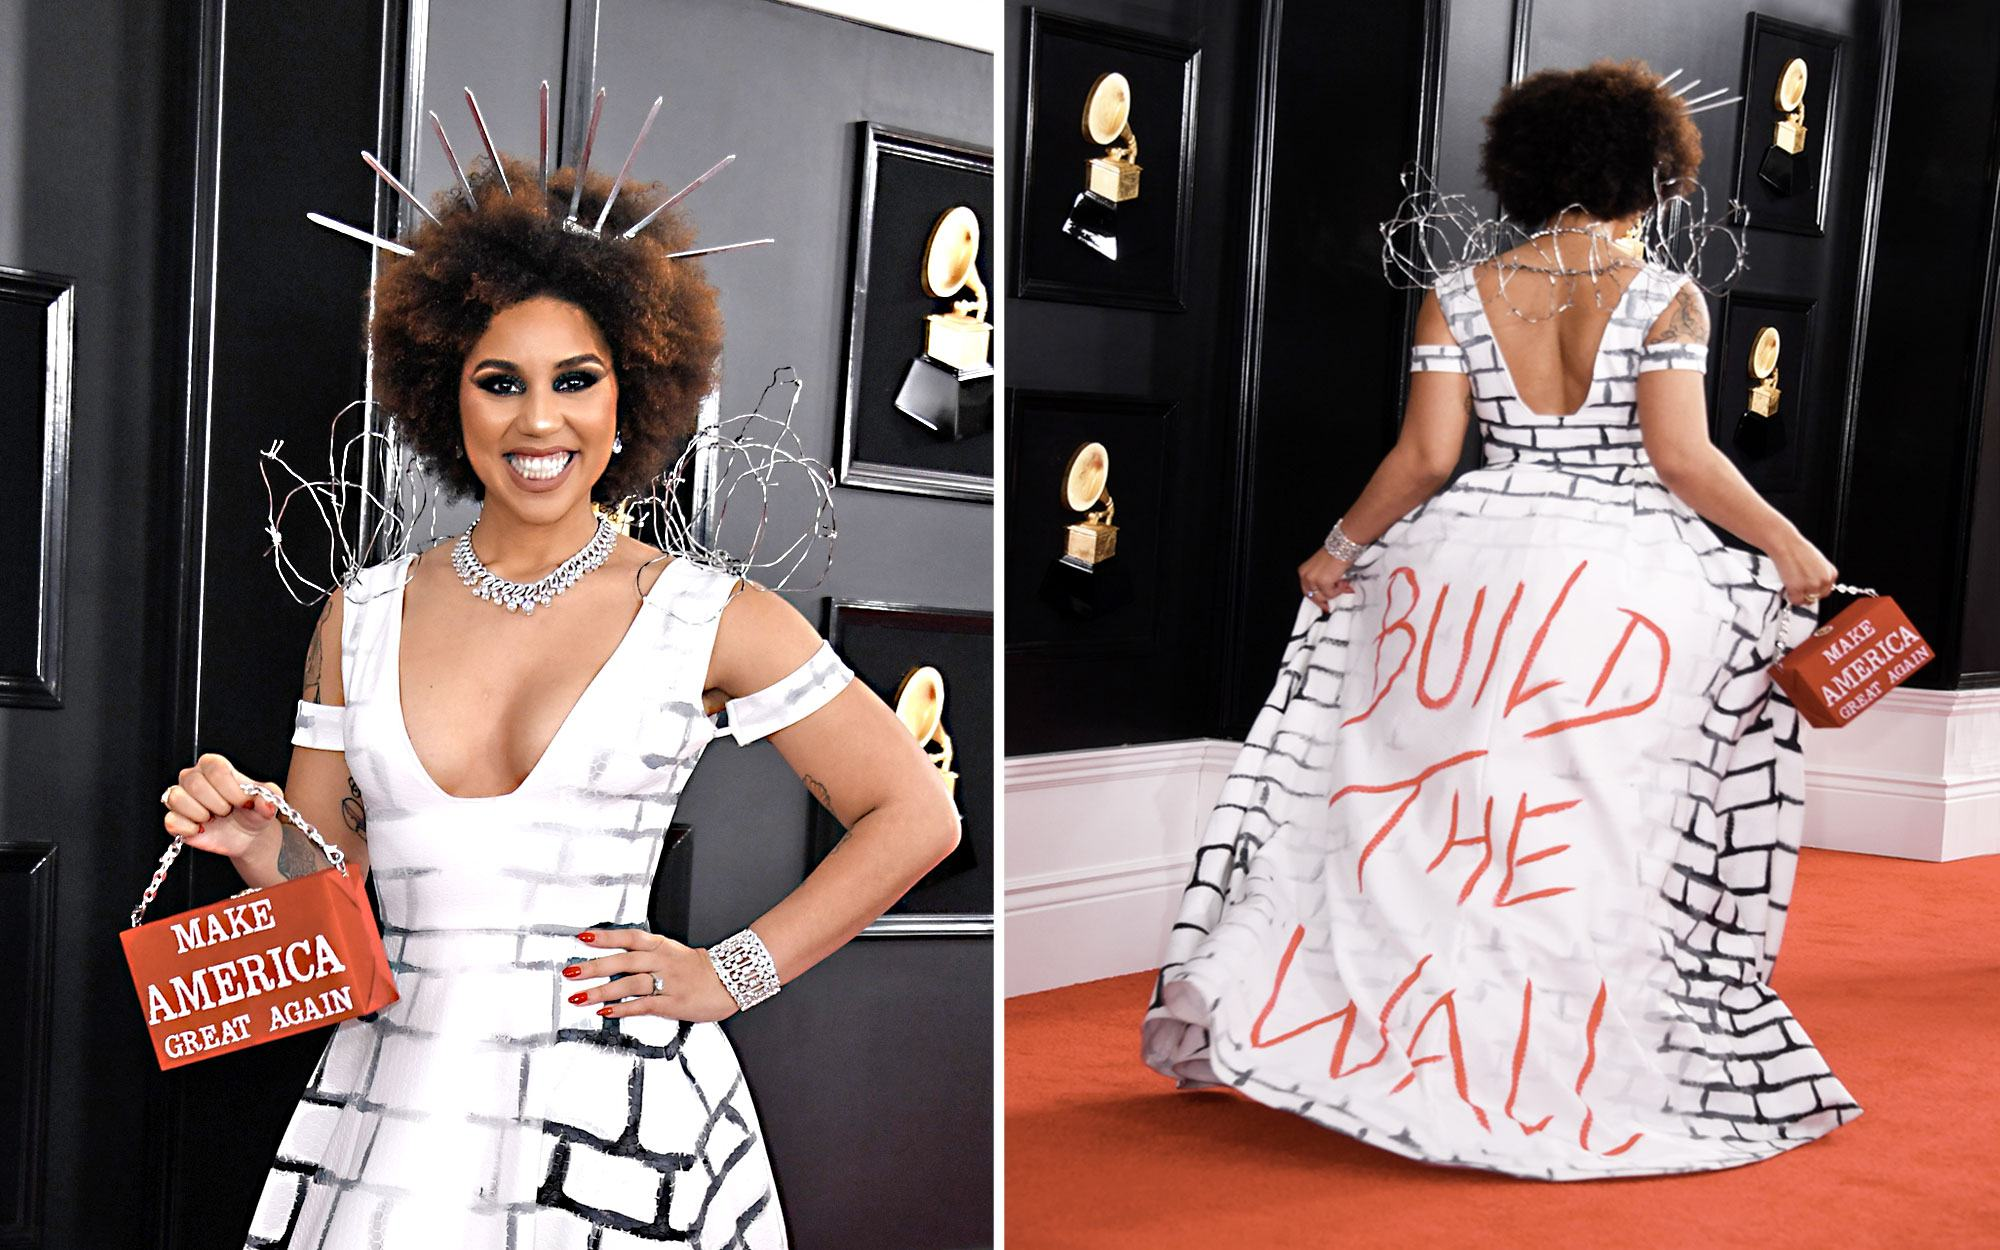 Exclusive: Joy Villa on Her Grammy Dress: 'I Want the Wall Built'